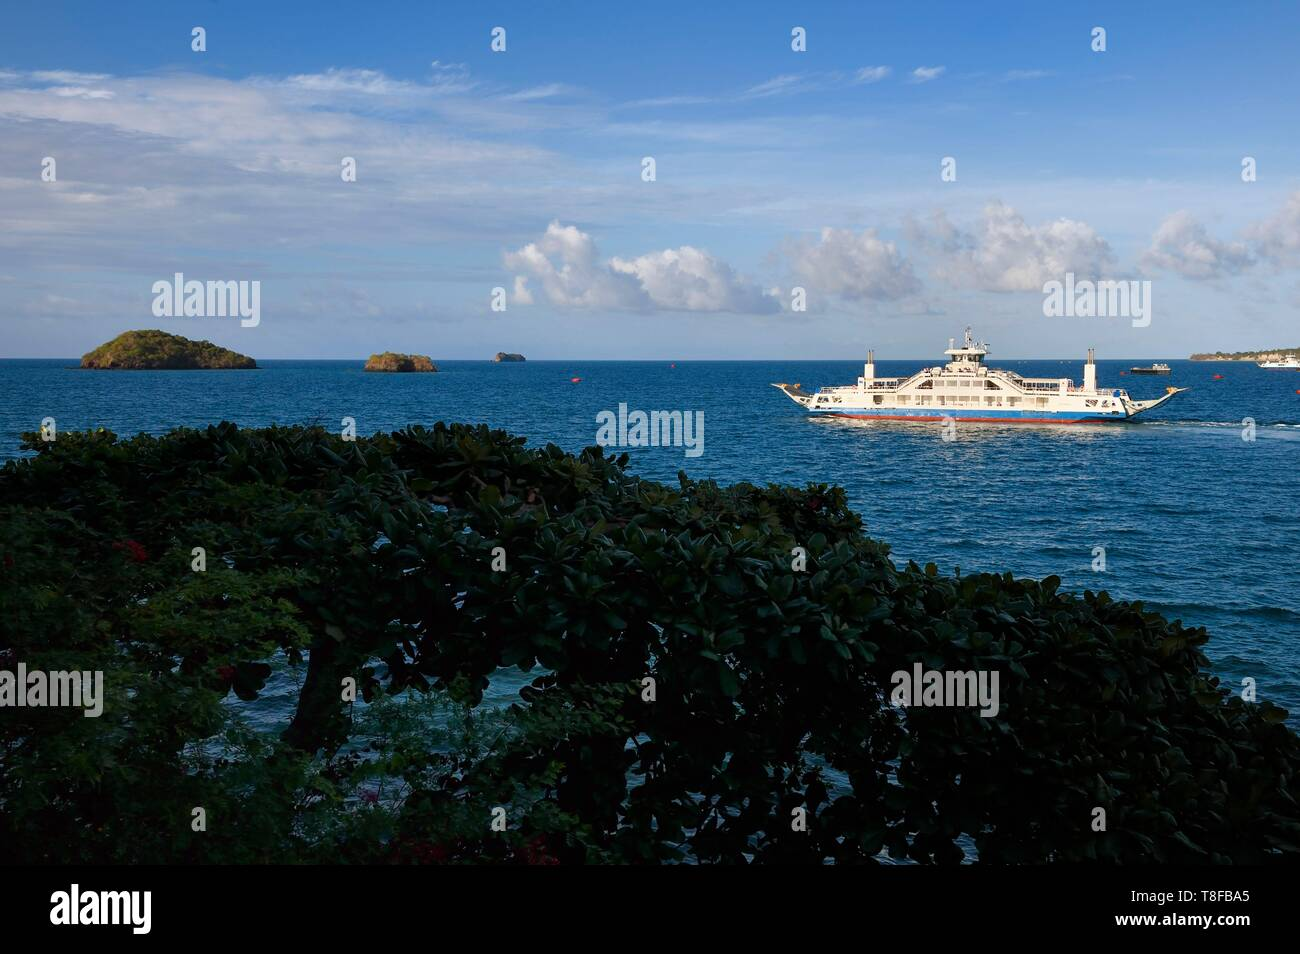 France, Mayotte island (French overseas department), Petite Terre, Dzaoudzi, departure of the barge for Mamoudzou on Grande Terre - Stock Image